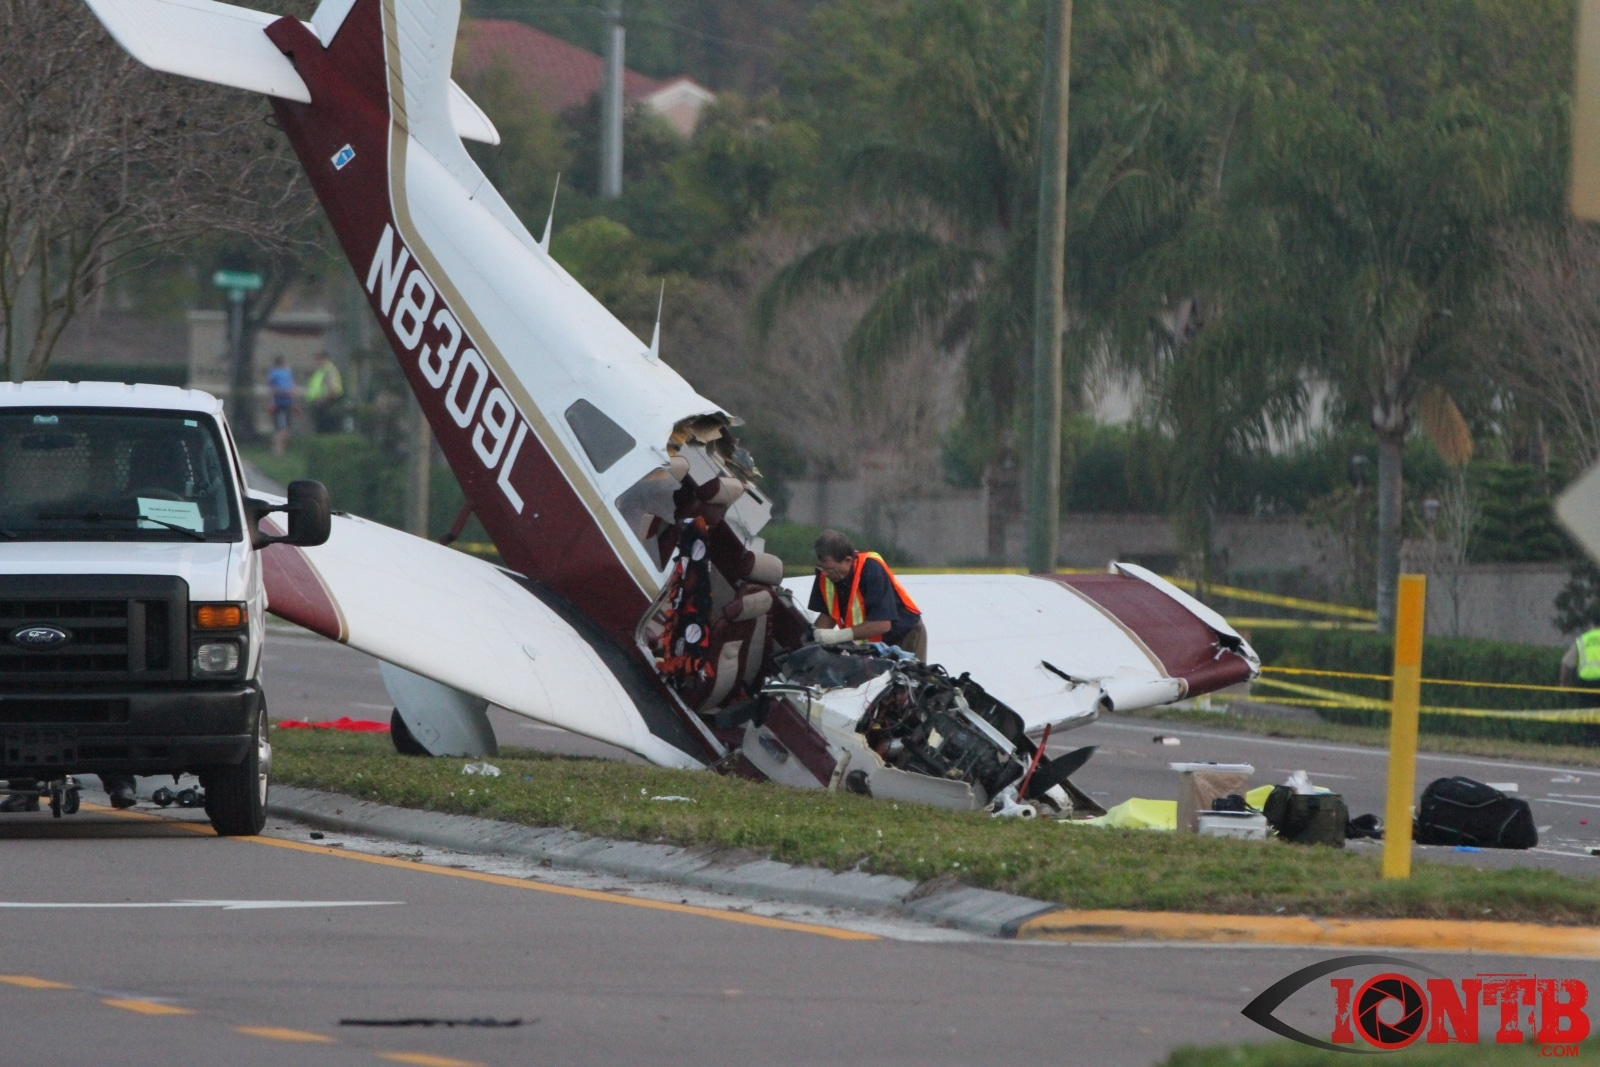 Aircraft Crashes on McMullen Booth Road; One Dead and Two Injured